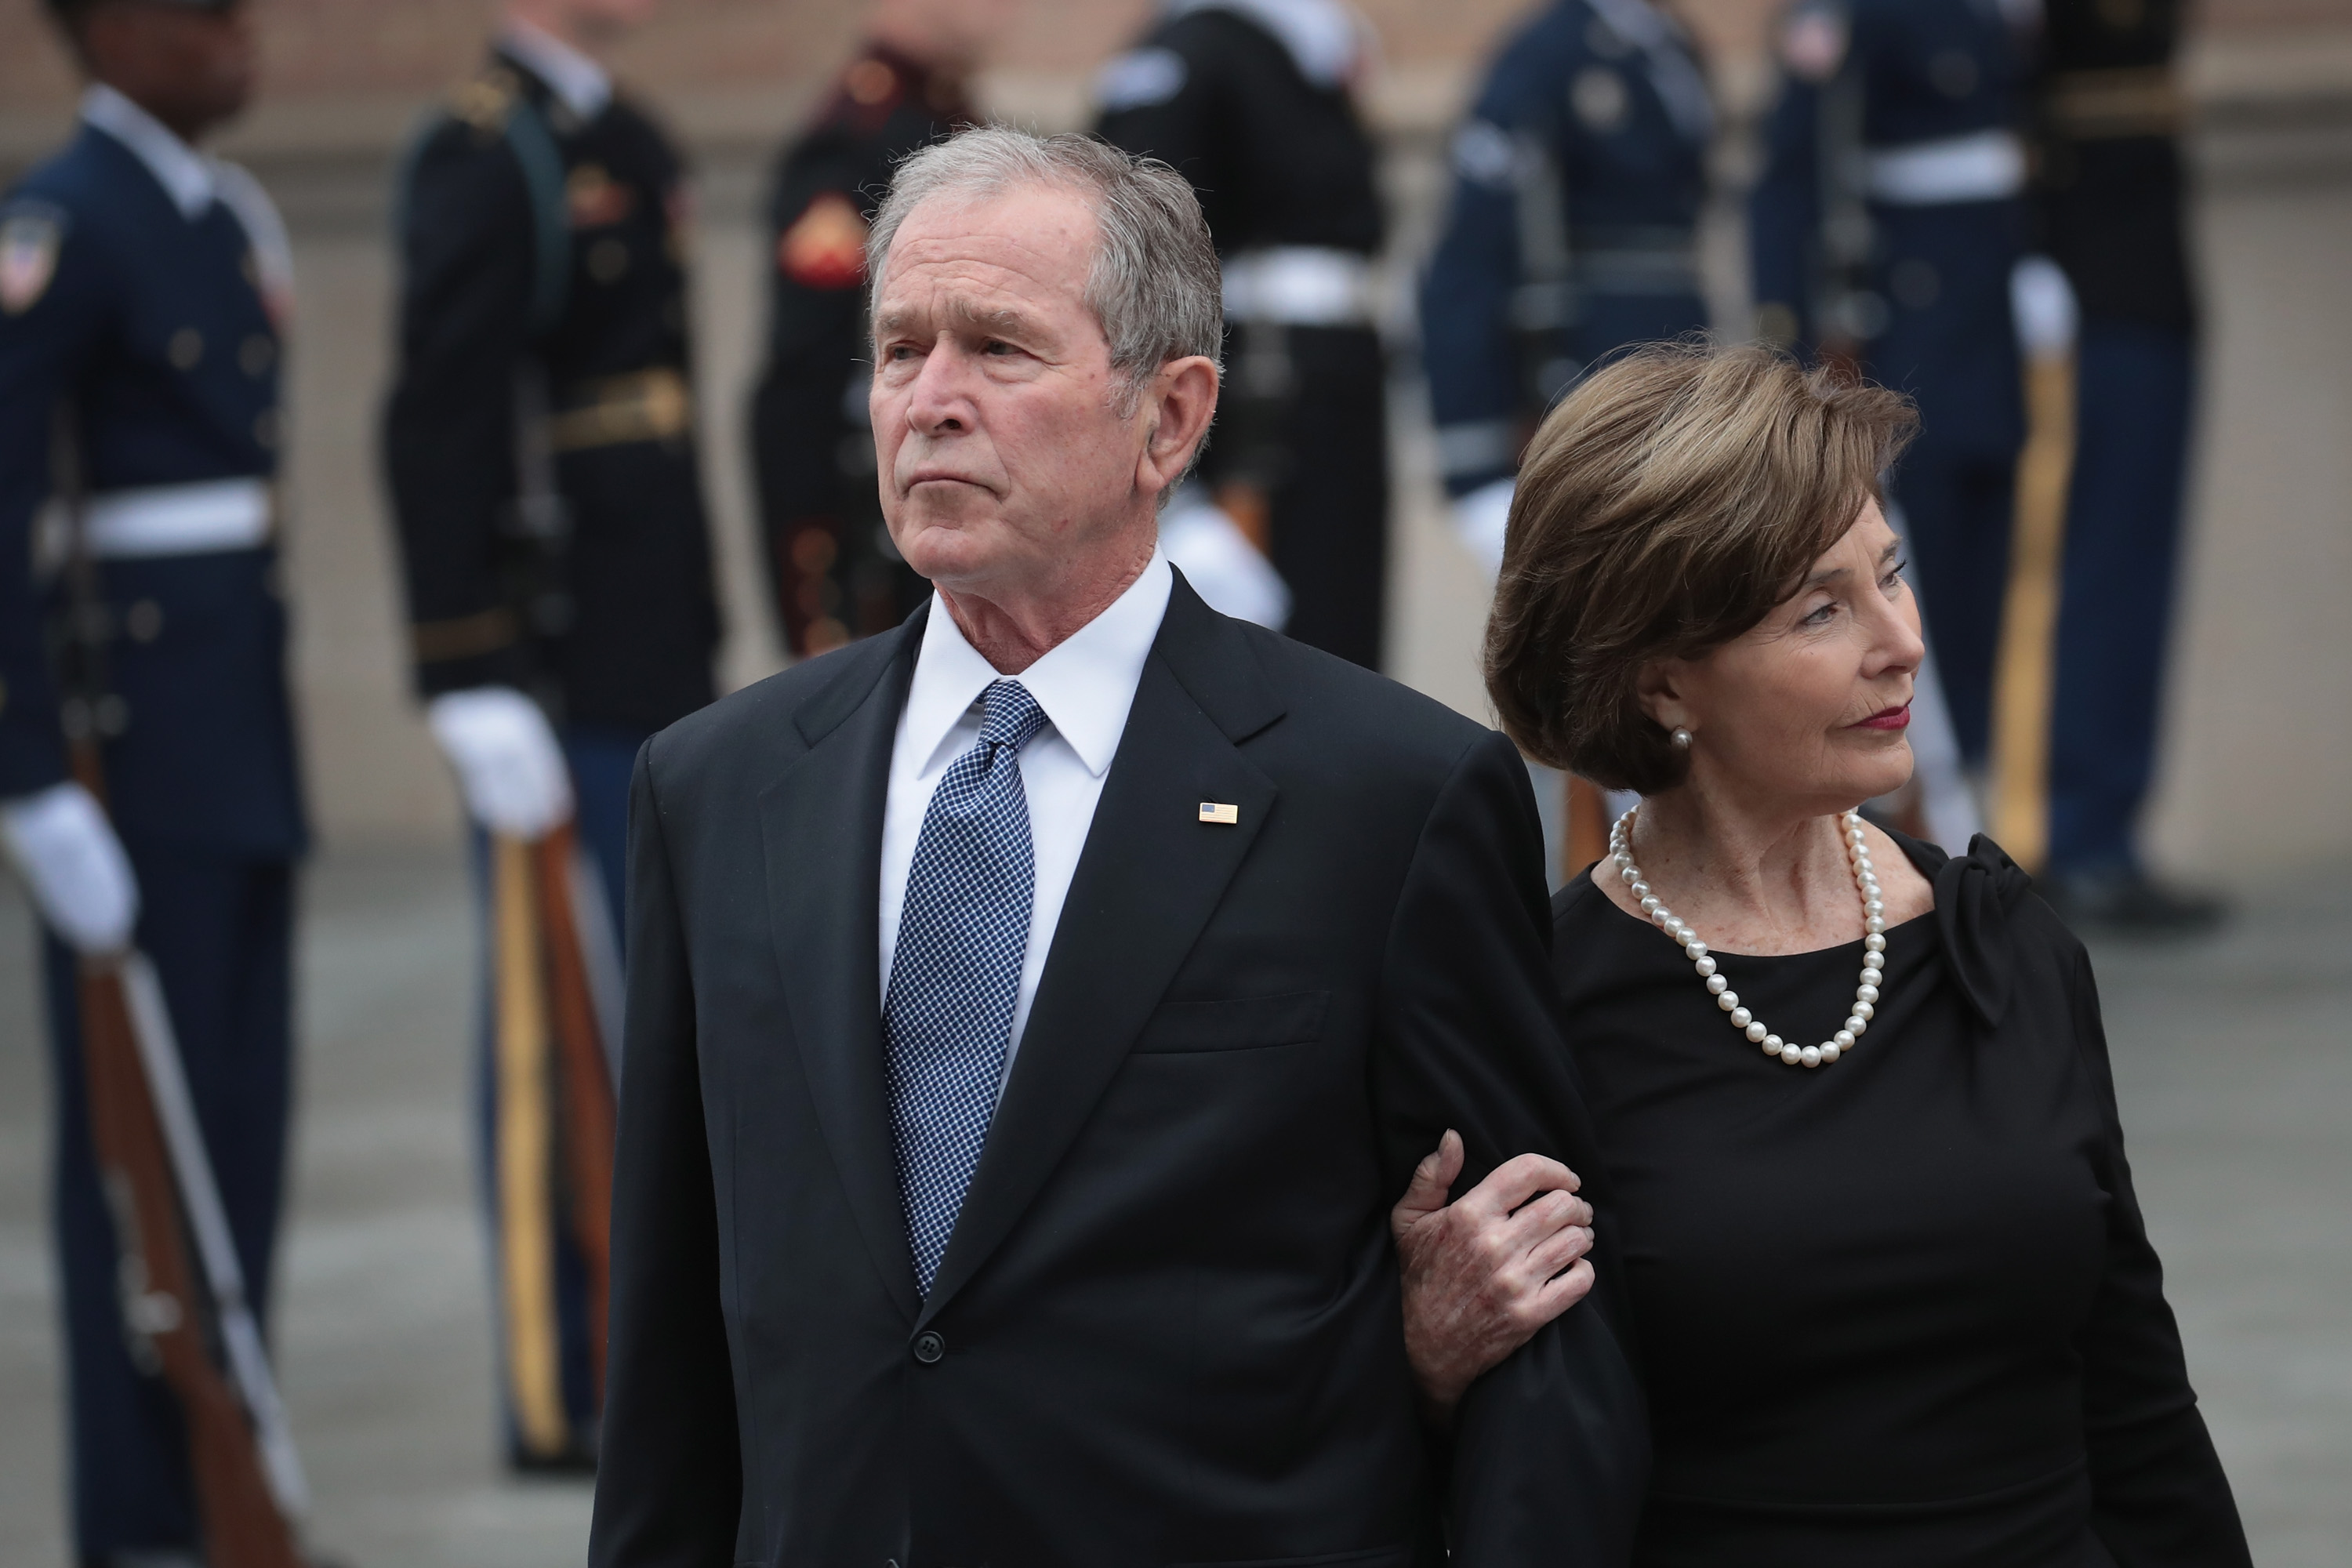 Former President George W. Bush and his wife Laura watch as the honor guard passes after loading the casket of President George H.W. Bush into a hearse outside St. Martin's Episcopal Church following his funeral service December 6, 2018 in Houston, Texas. (Scott Olson/Getty Images)